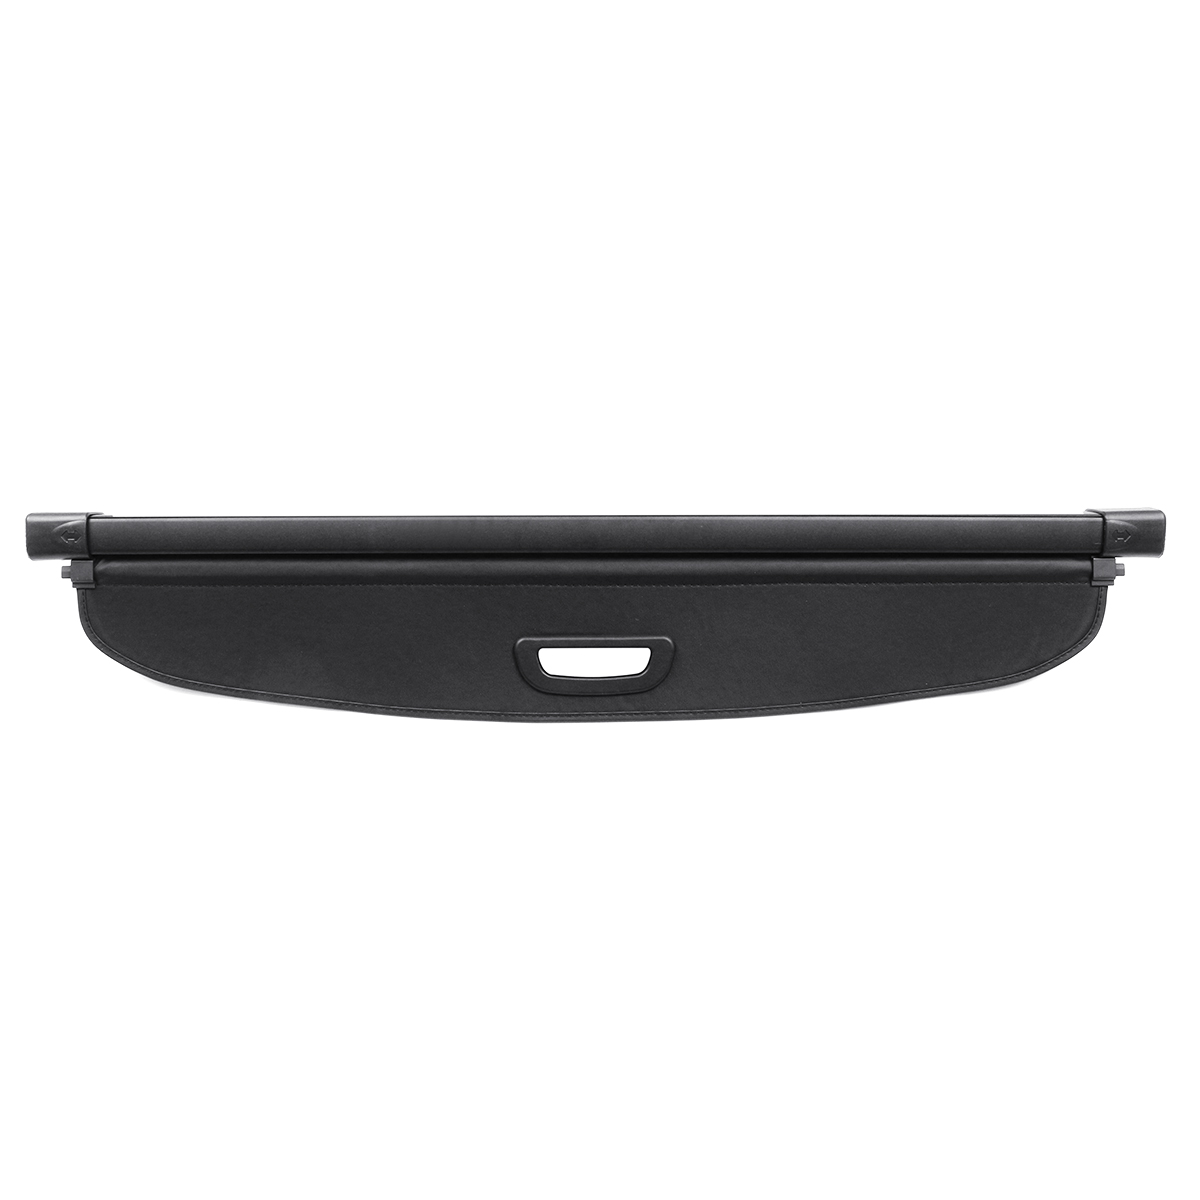 Car Rear Trunk Cargo Cover Security Shield Shade Covers For Ford Edge 2015 2016 2017